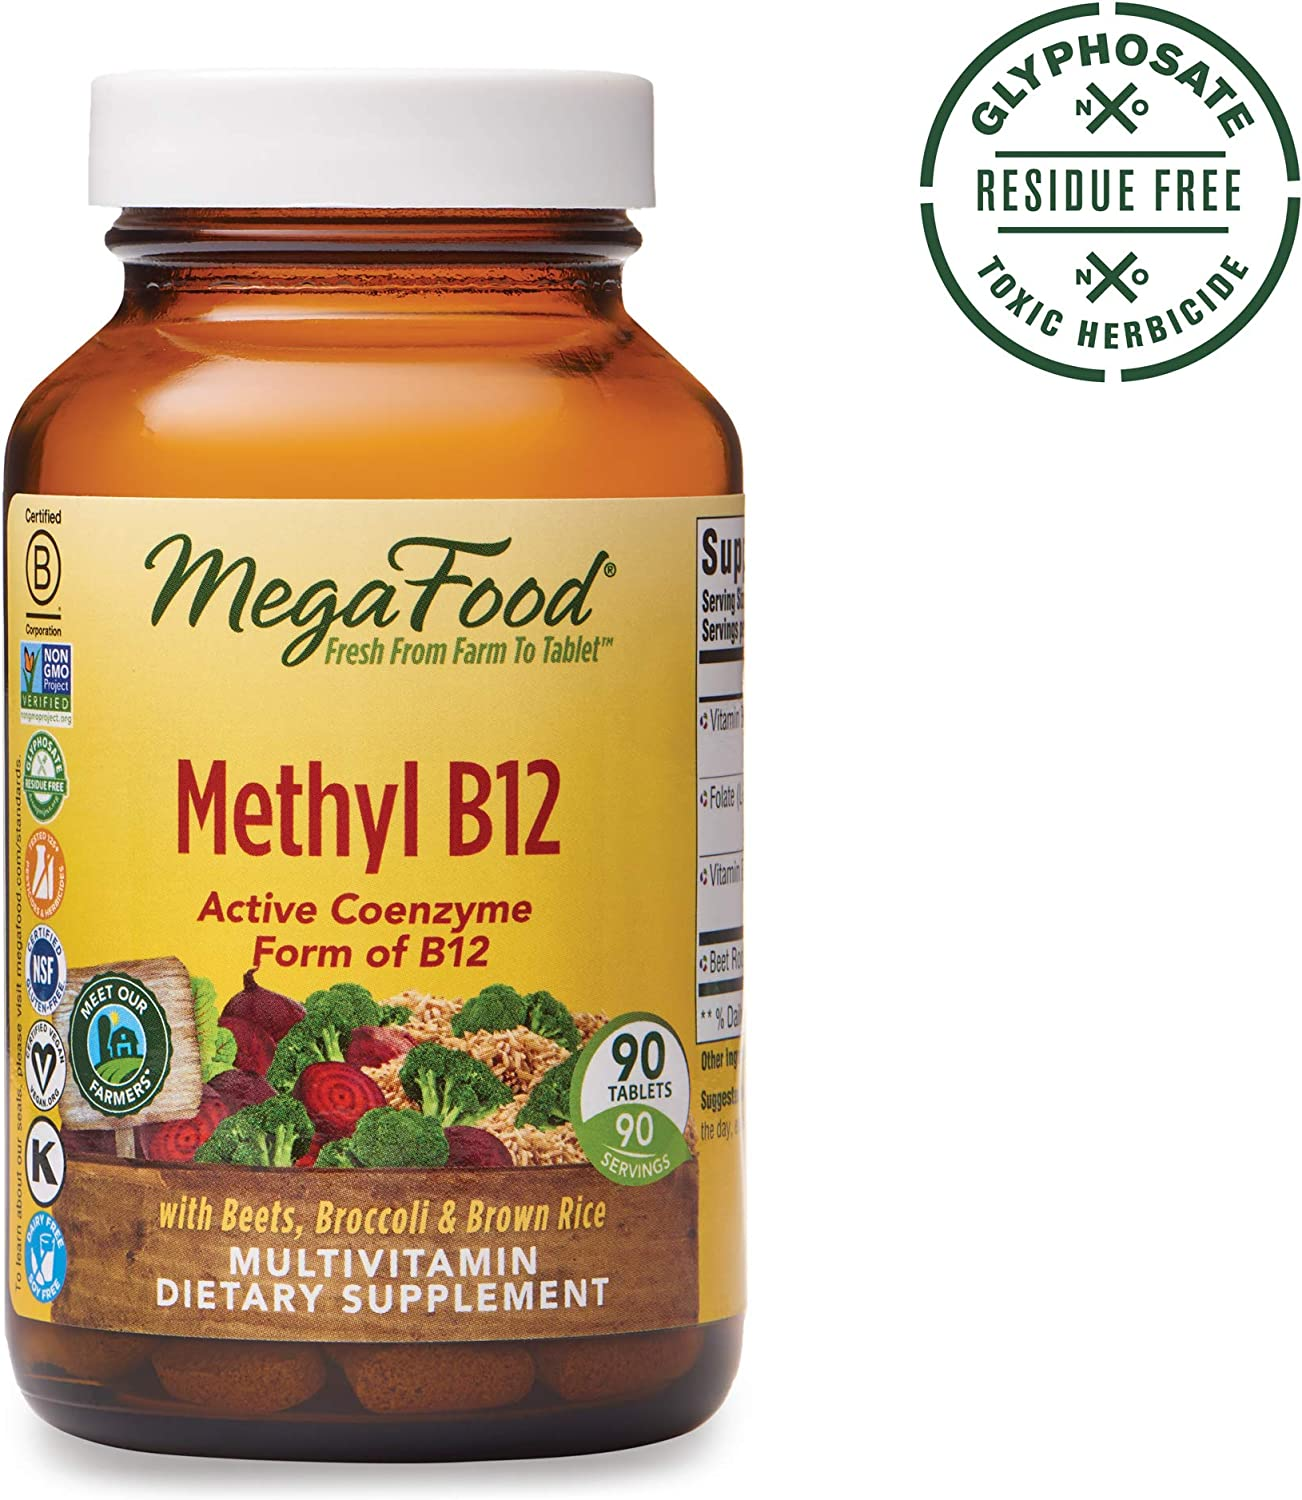 MegaFood, Methyl B12, Helps Maintain a Healthy Heart and Homocysteine Levels, Multivitamin Supplement, Gluten Free, Vegan, 90 Tablets 90 Servings